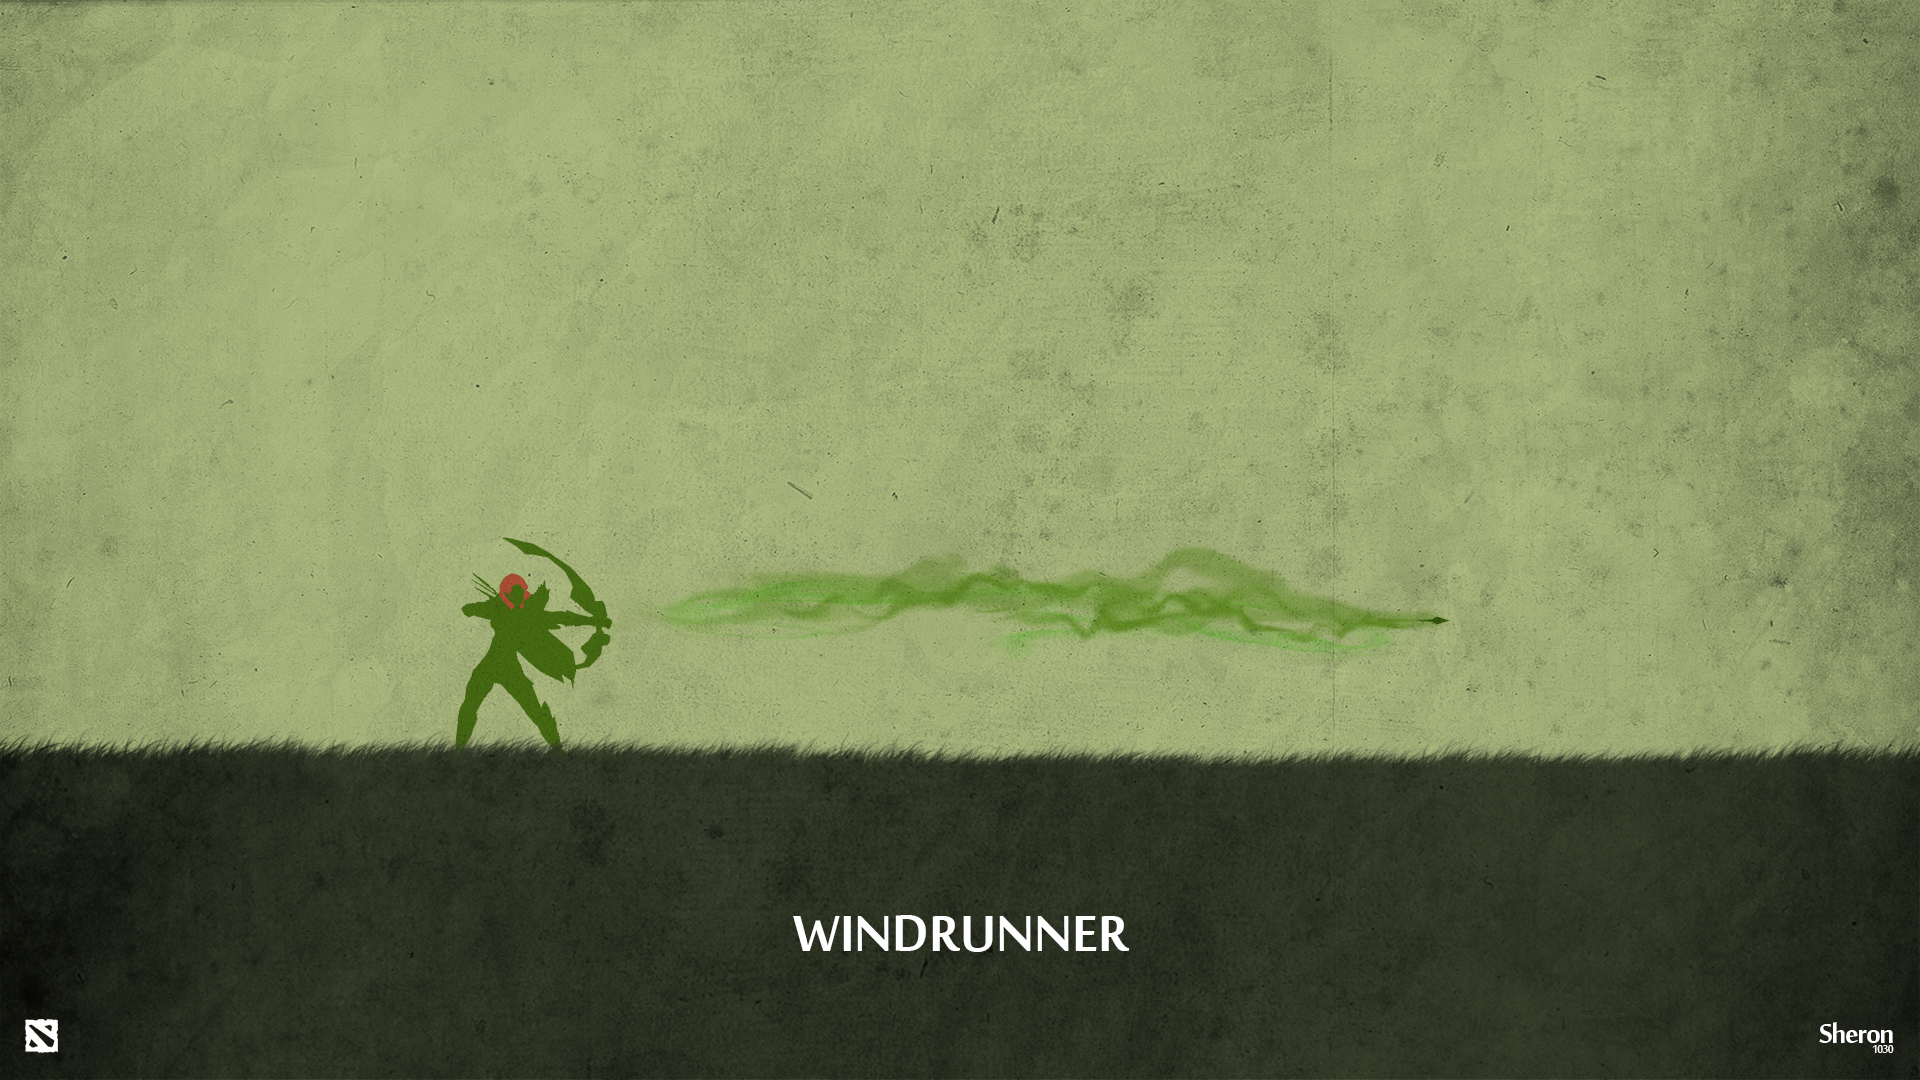 Windrunner Wallpaper